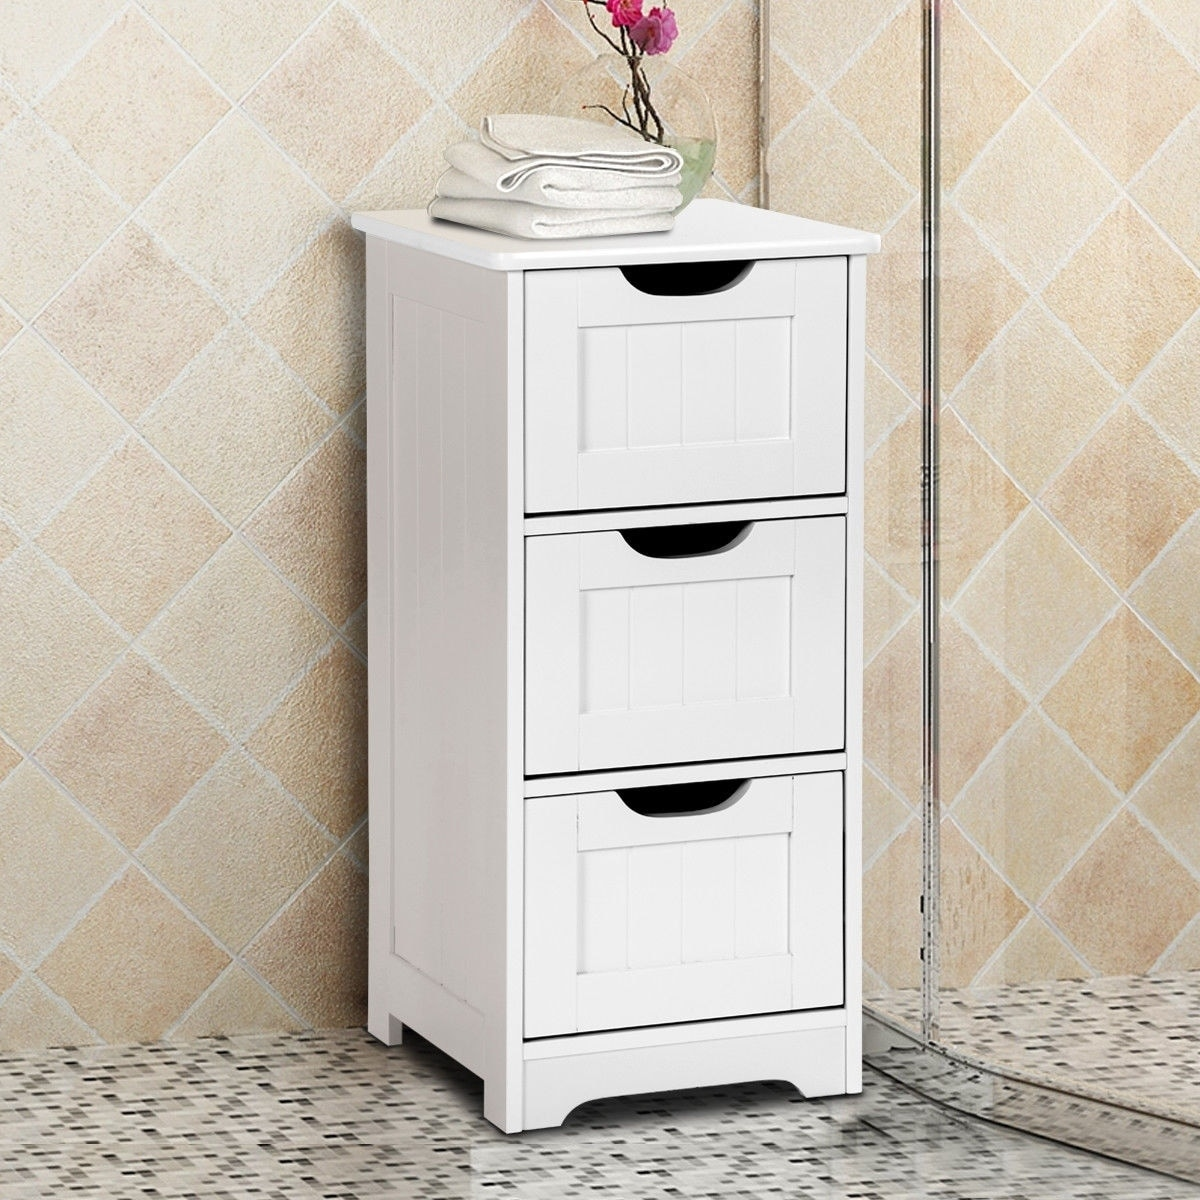 Bathroom Floor Cabinet 5-Drawer Wooden Storage Side Organizer